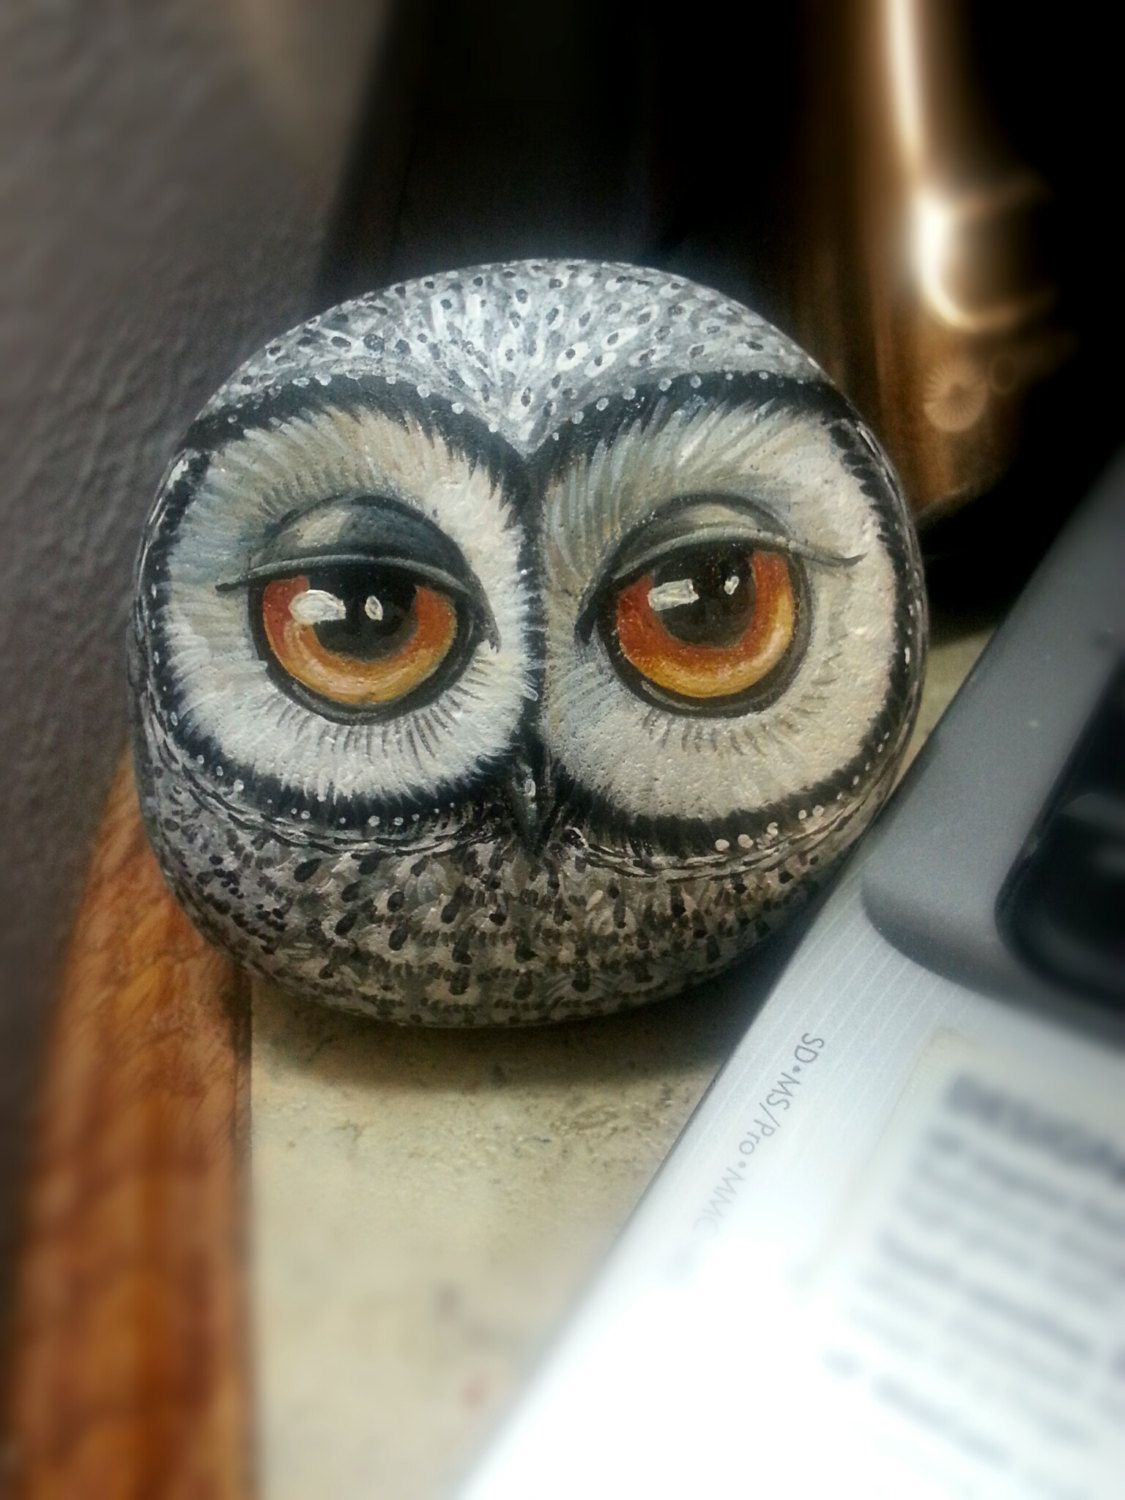 This Is A Cute Little Owl I Created During The Late Hours